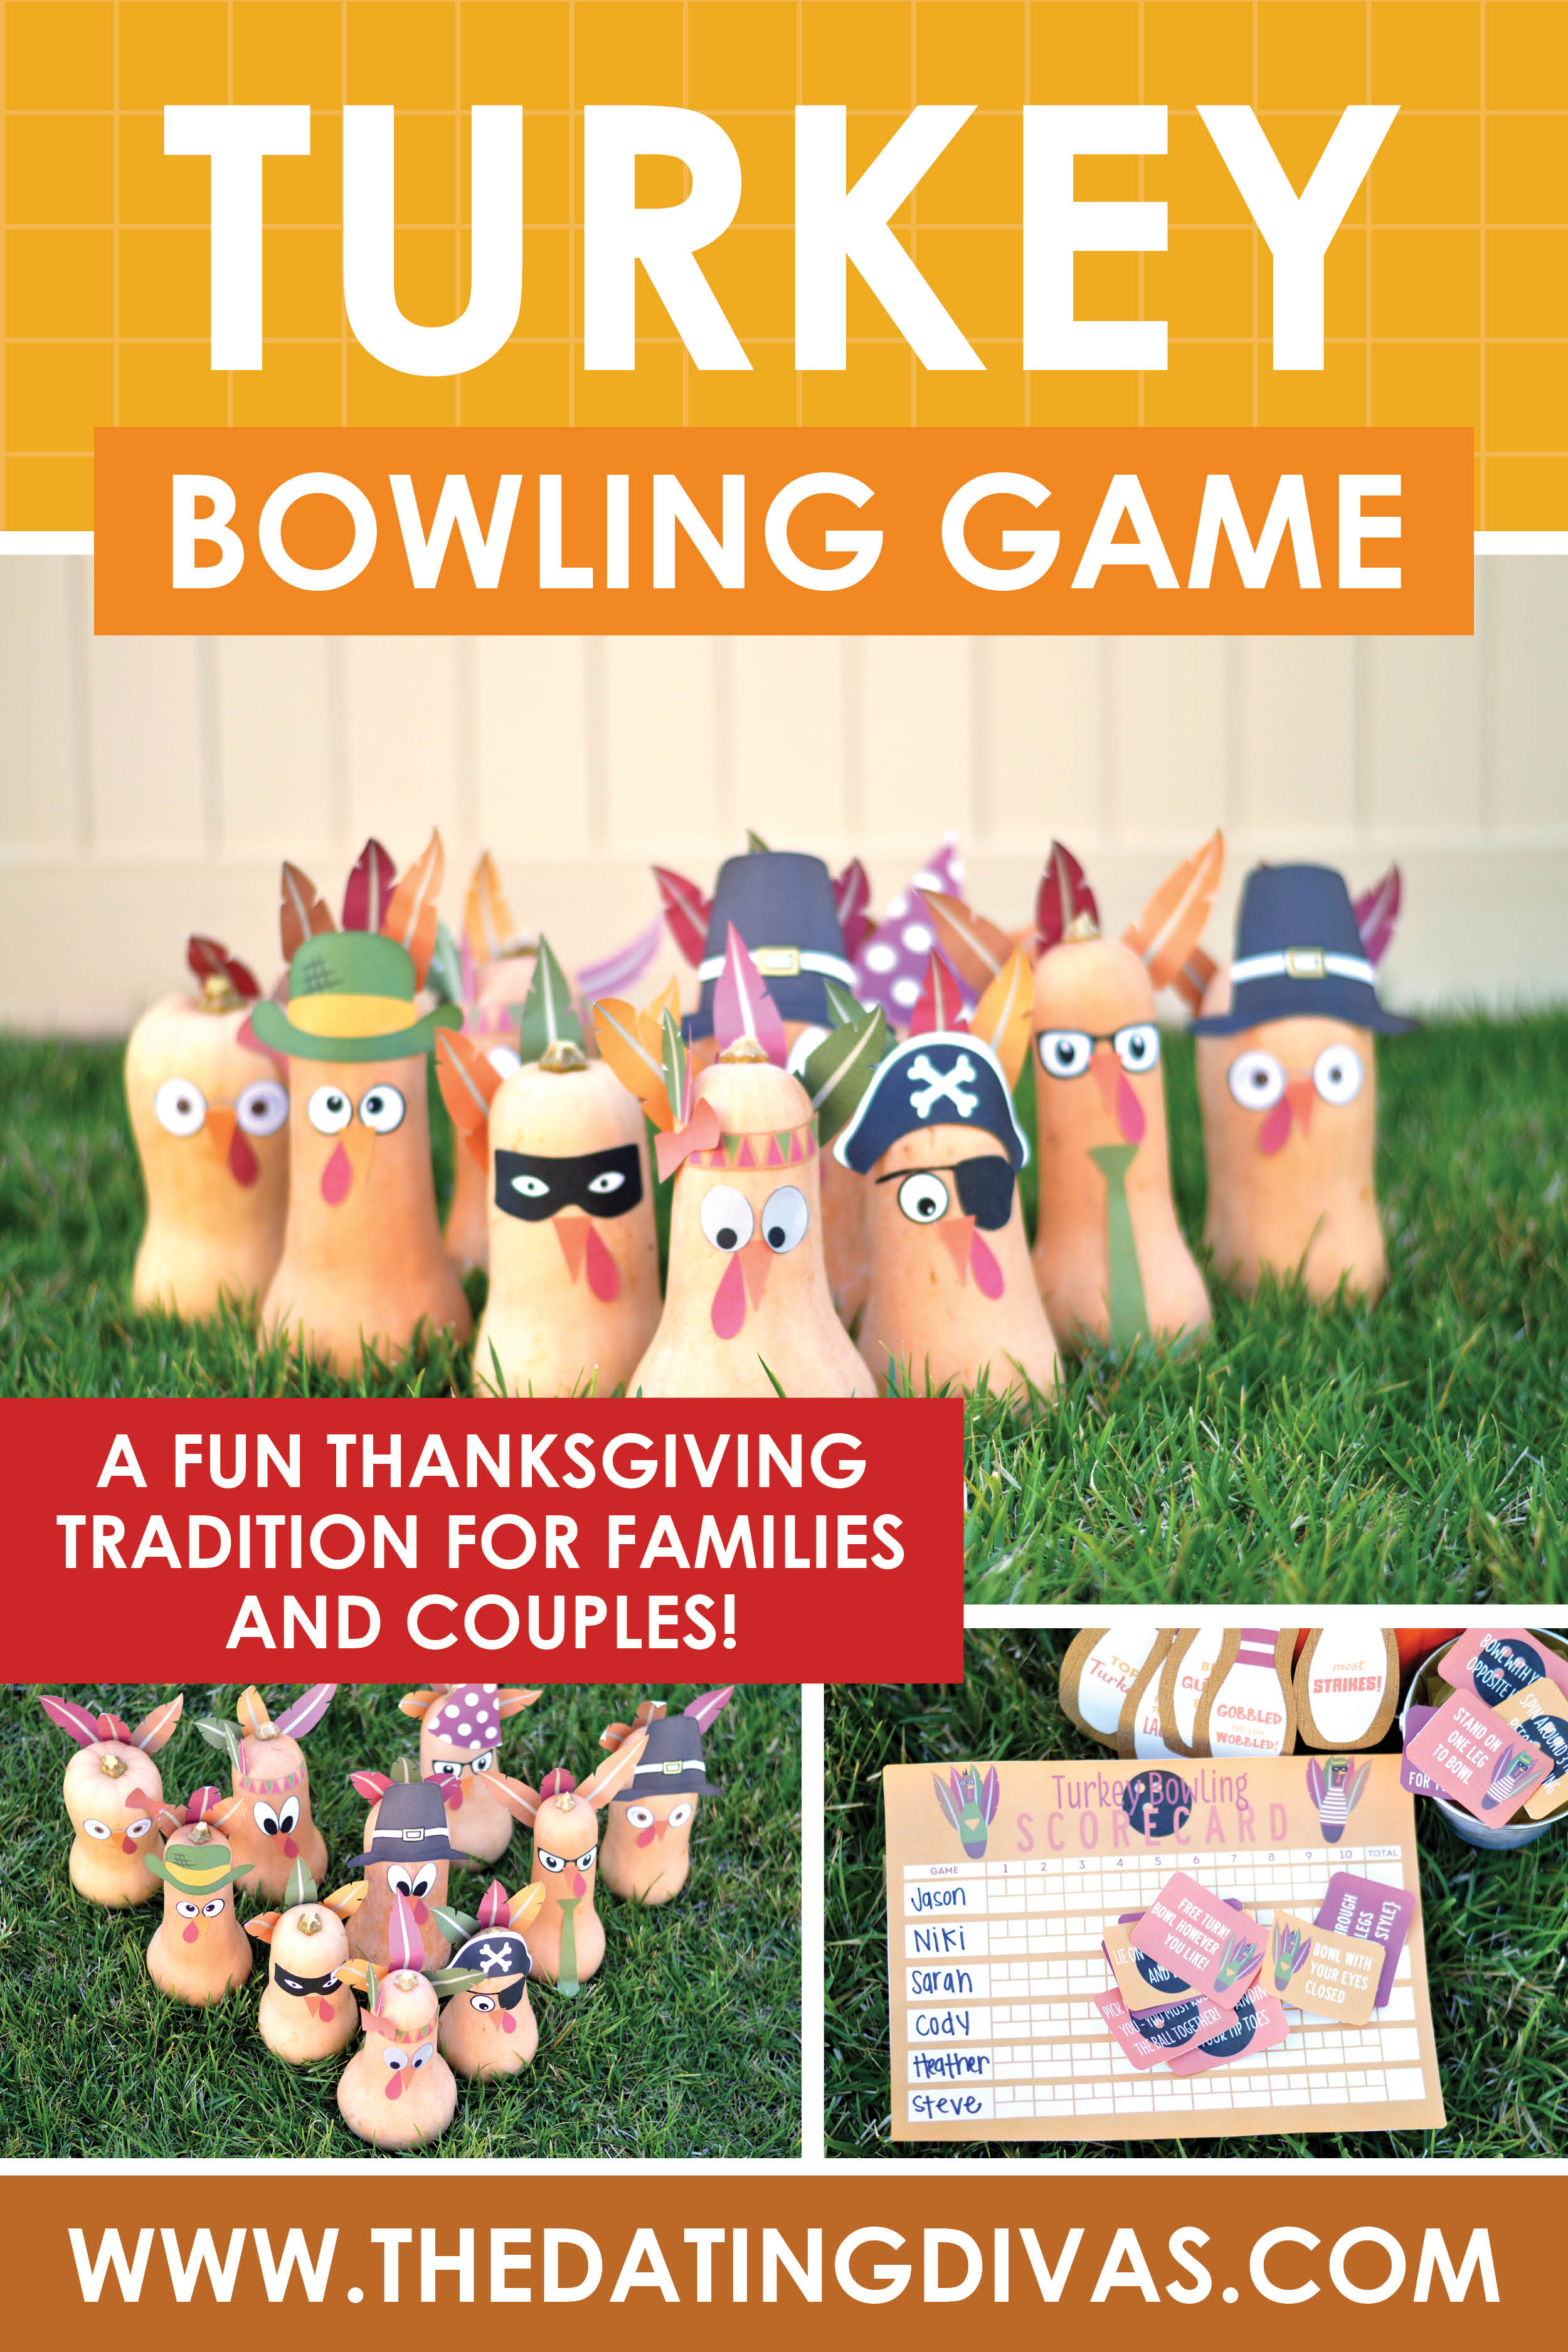 Take your Thanksgiving party to the next level with this Turkey bowling game from The Dating Divas! Make it a fun party game for all of your guests or a date night idea for you and your sweetie!